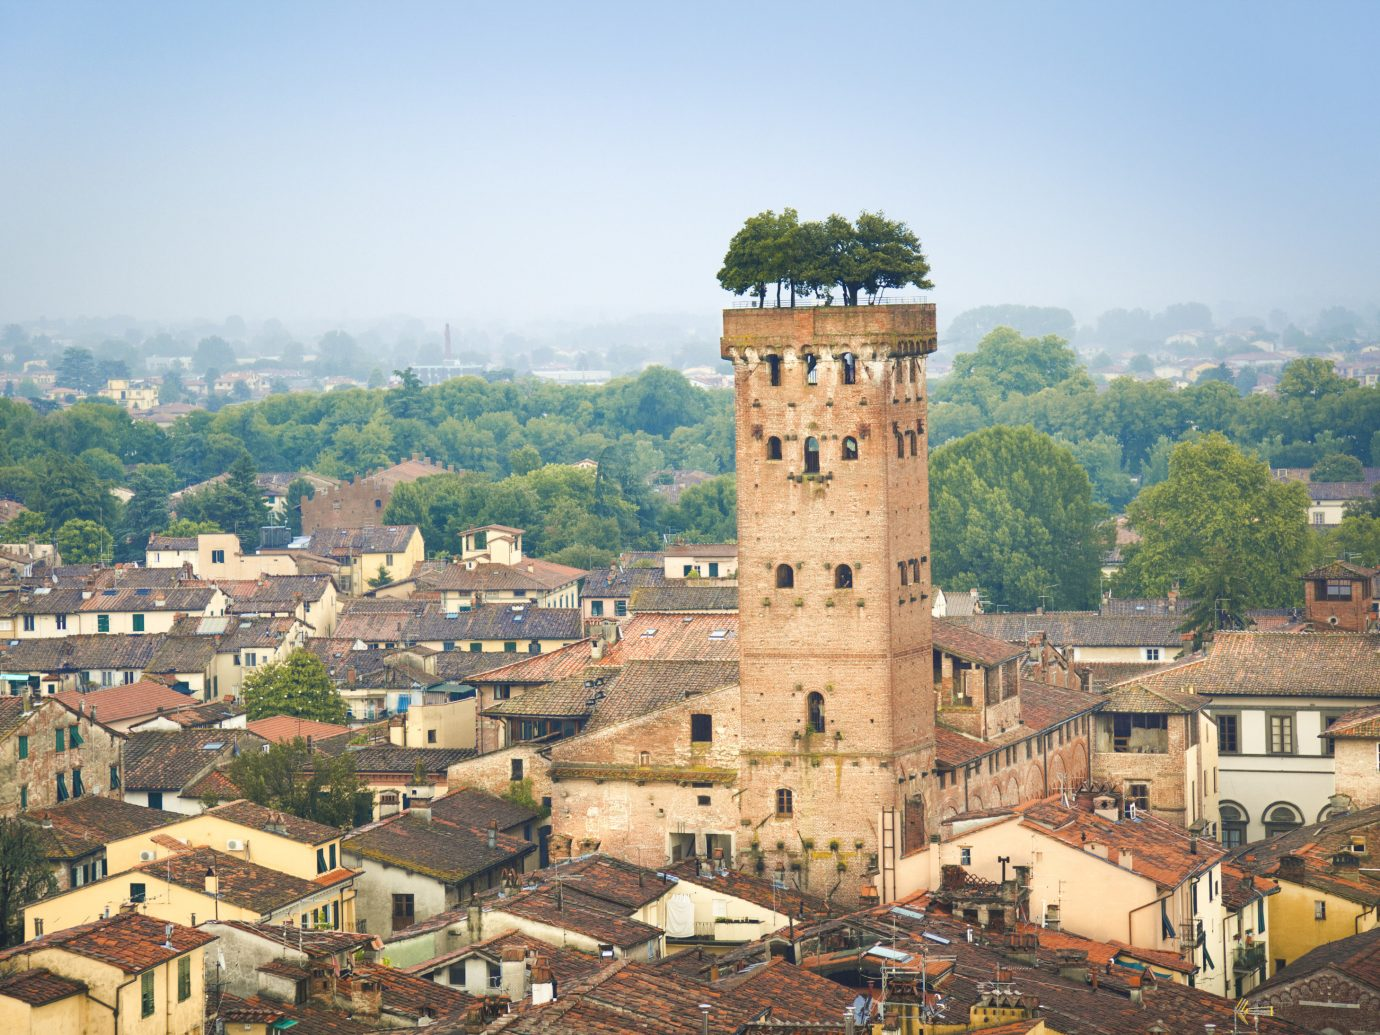 Italy Trip Ideas sky landmark City Town tower urban area tree historic site fortification building château castle ancient history Village history tourism roof middle ages